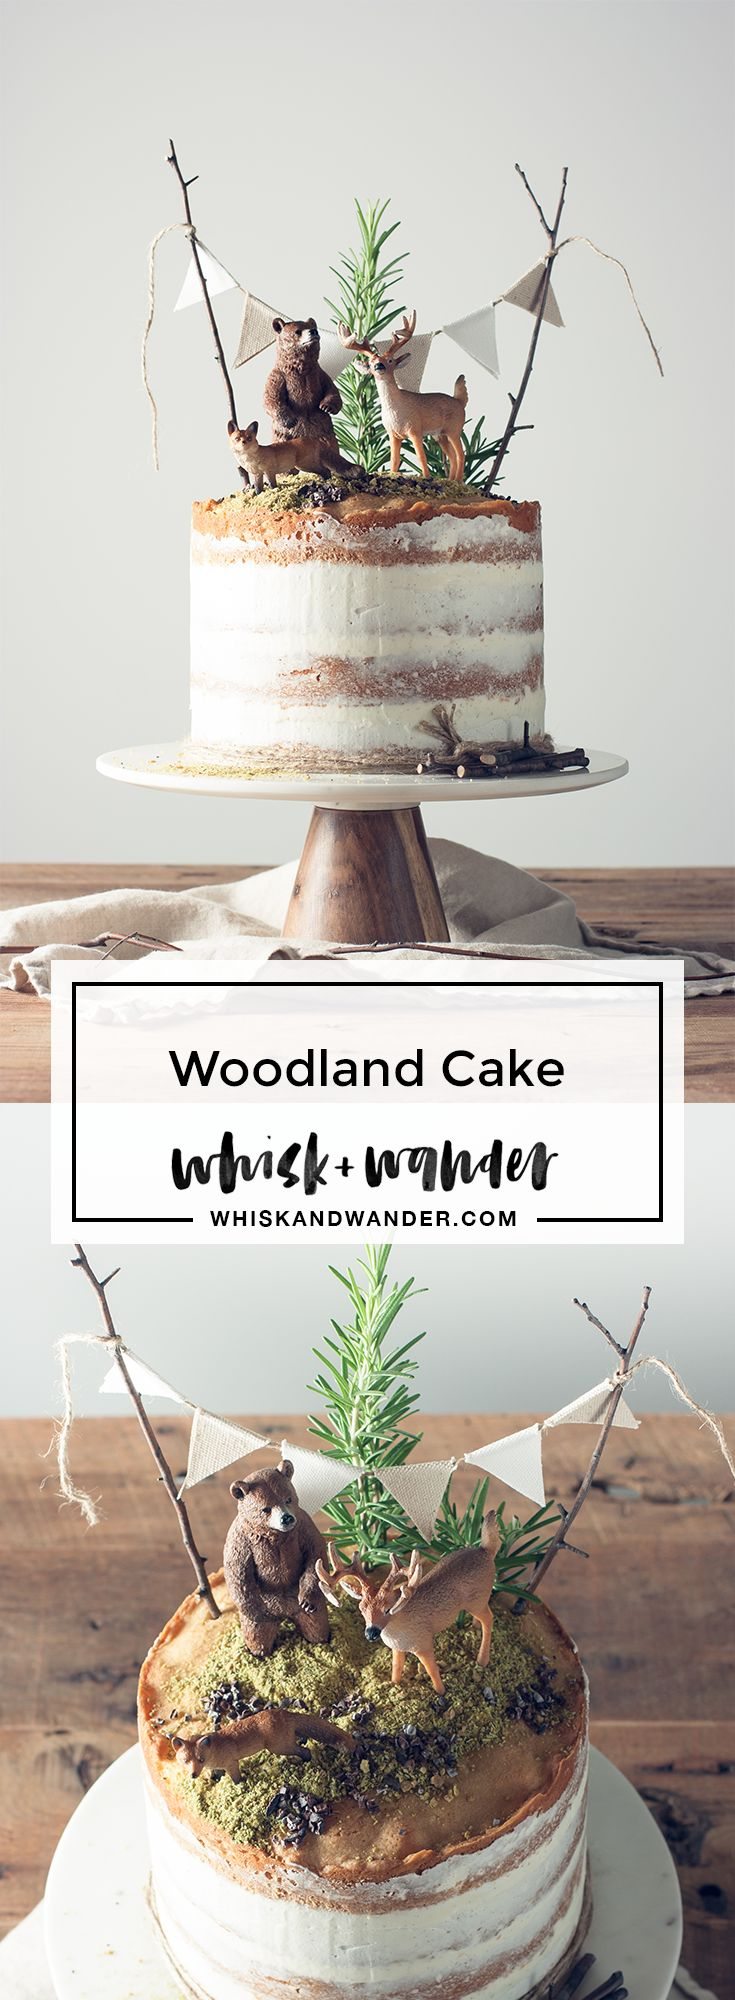 This playful woodland cake is made of flavorful Madeira cake layers and finished…  – MɎ WȺɎ ŦØ ŁƗVɆ